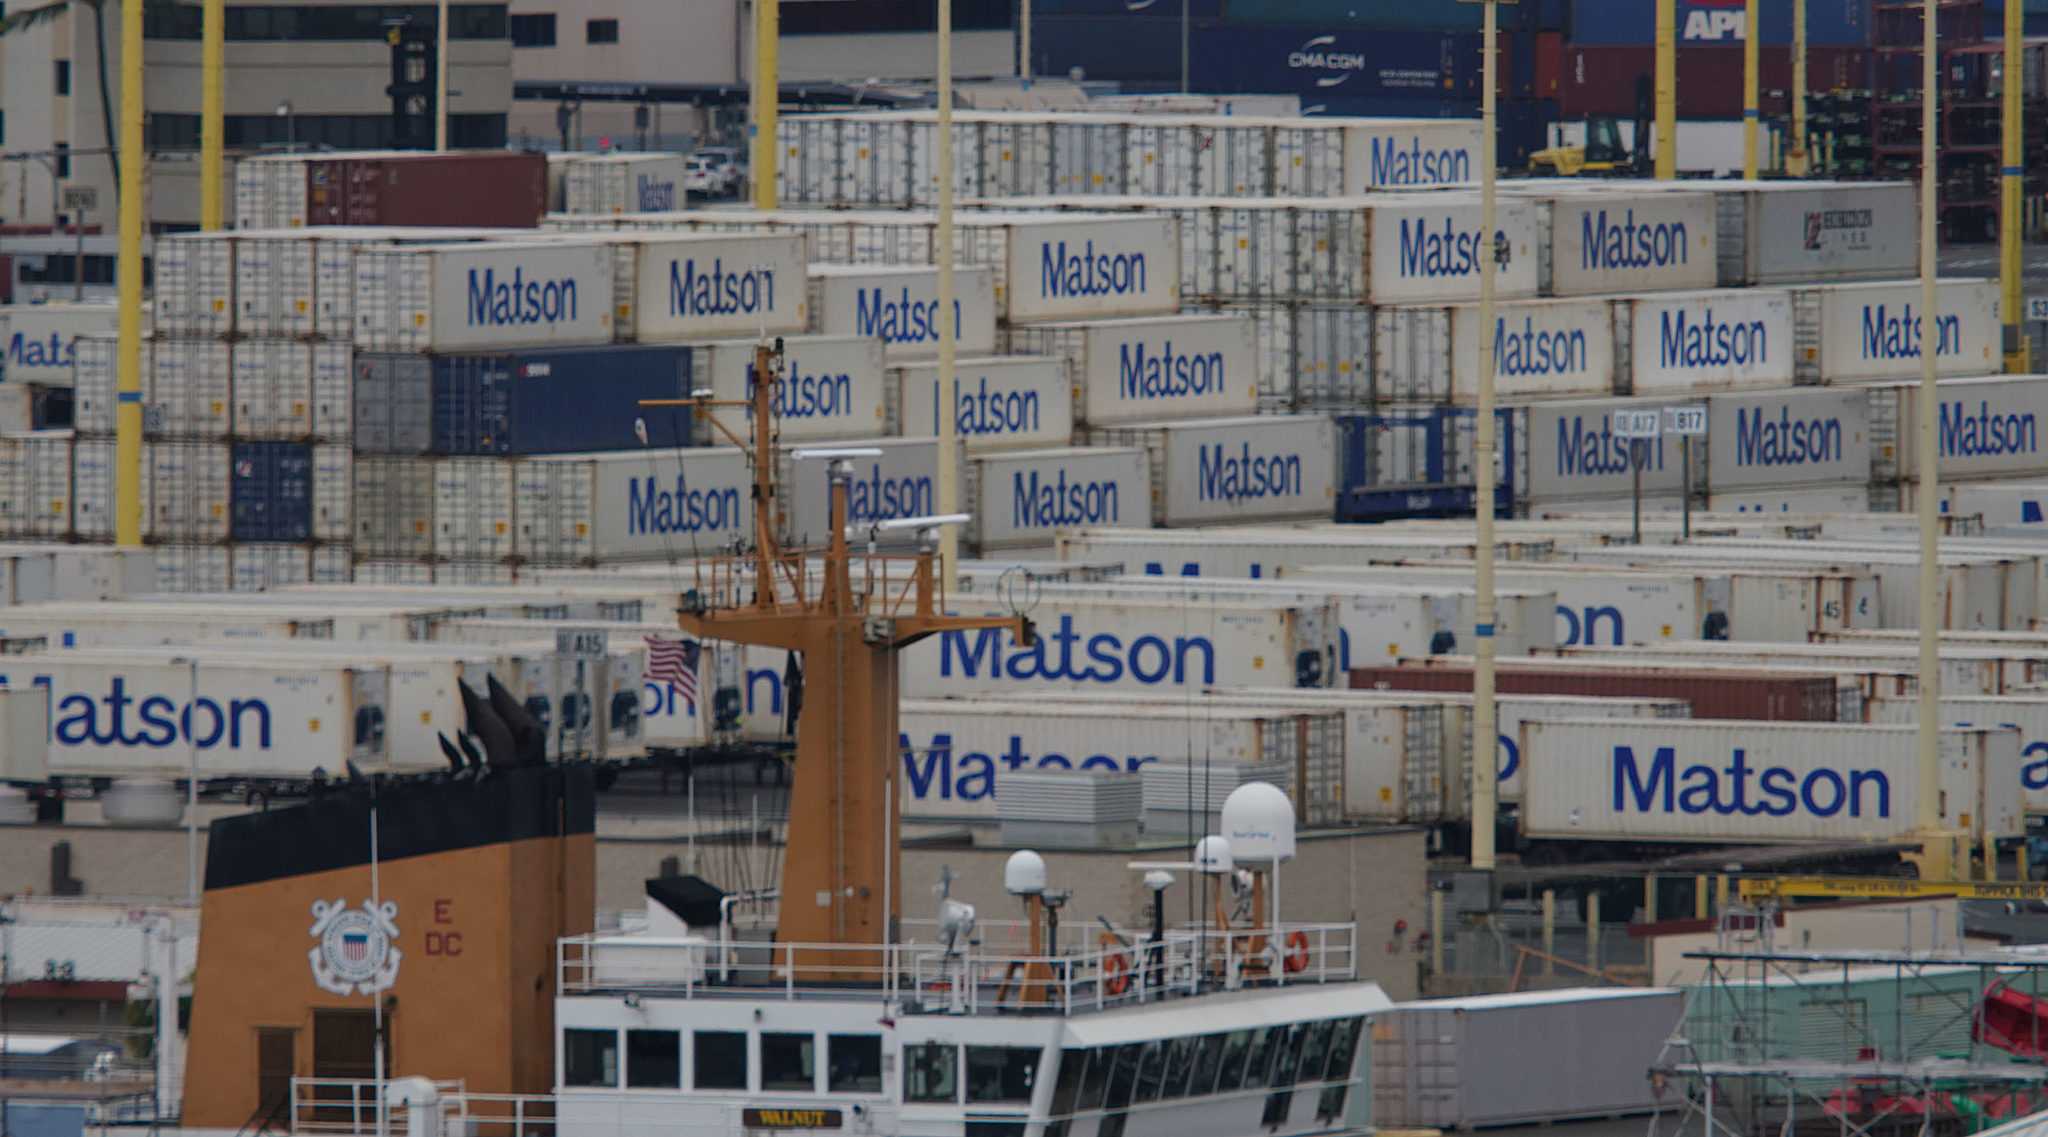 Matson containers Sand Island Honolulu Harbor.